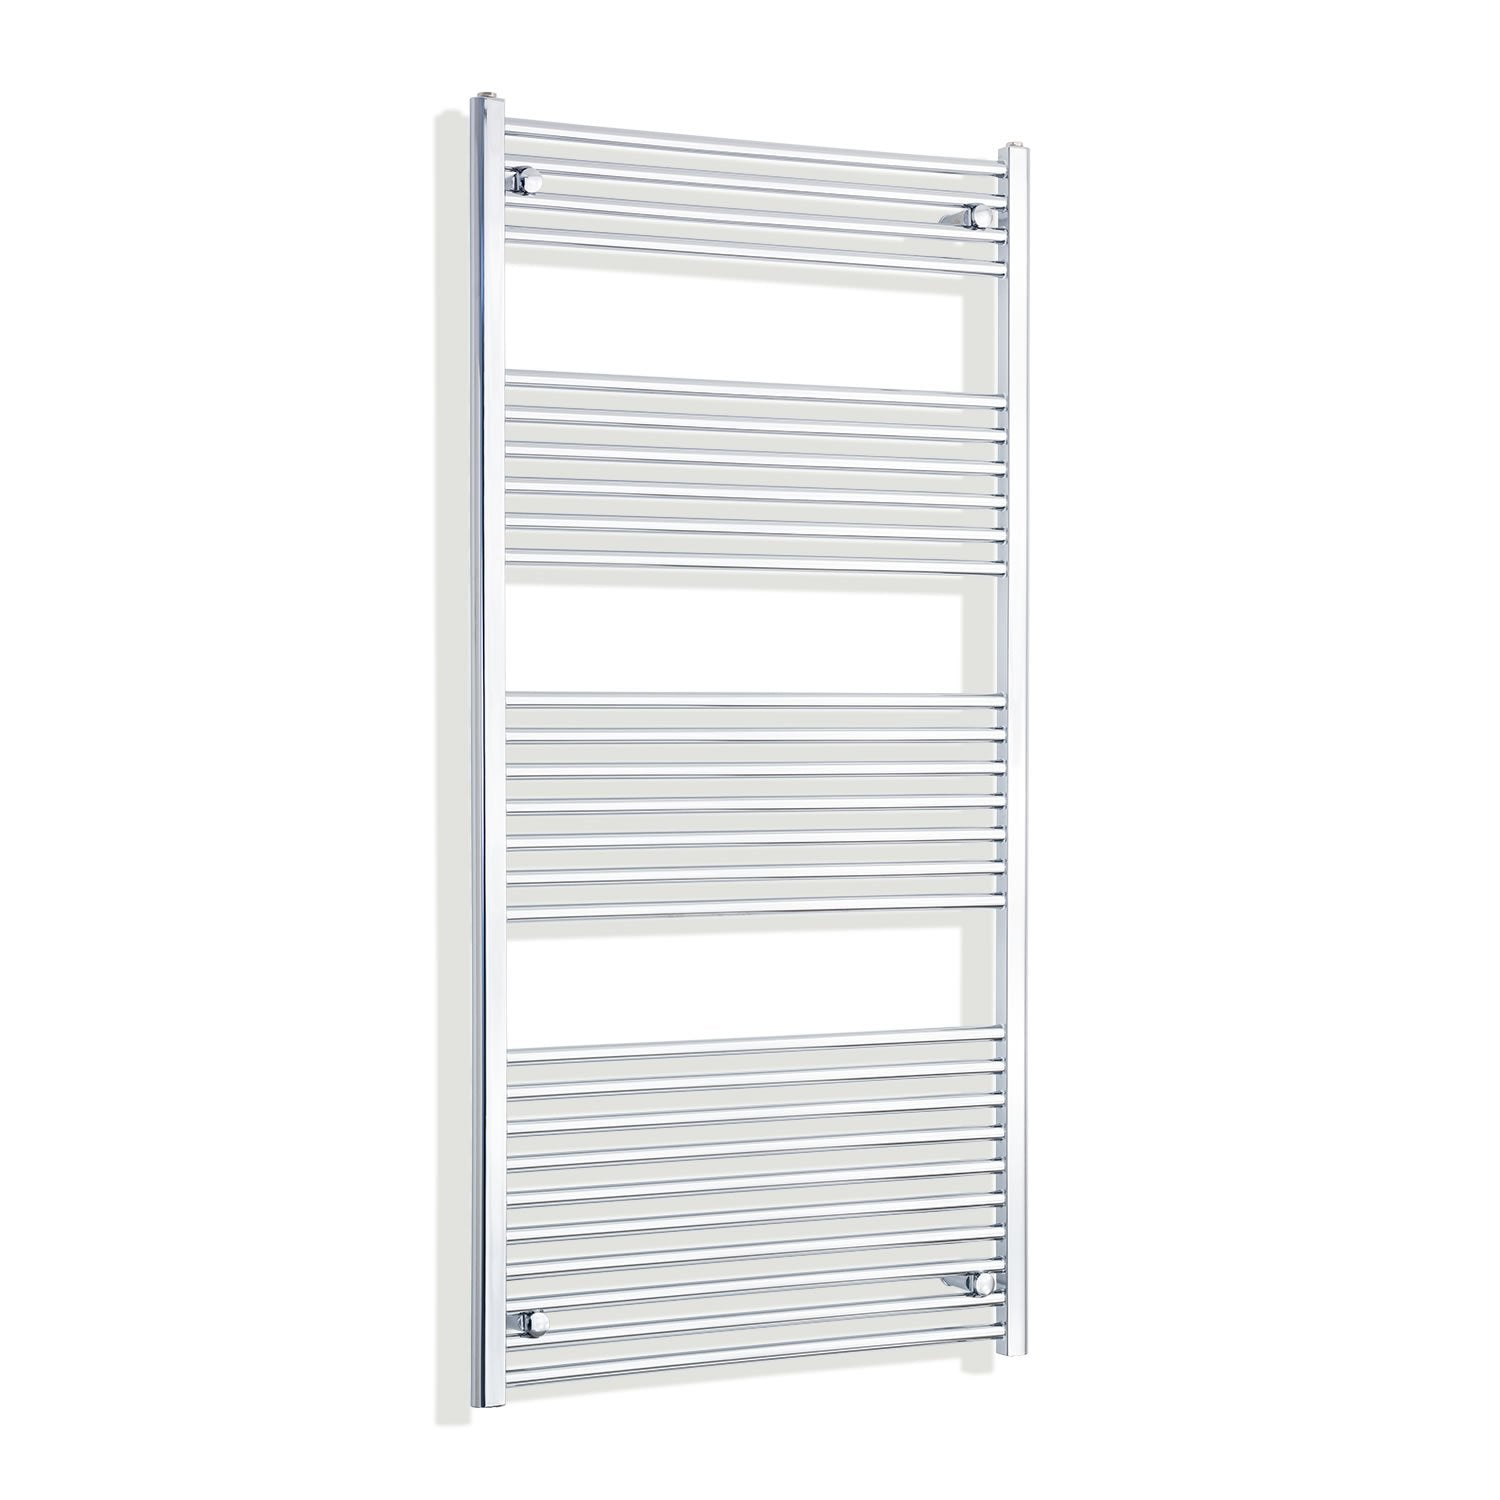 750mm Wide 1600mm High Flat Chrome Heated Towel Rail Radiator HTR,Towel Rail Only